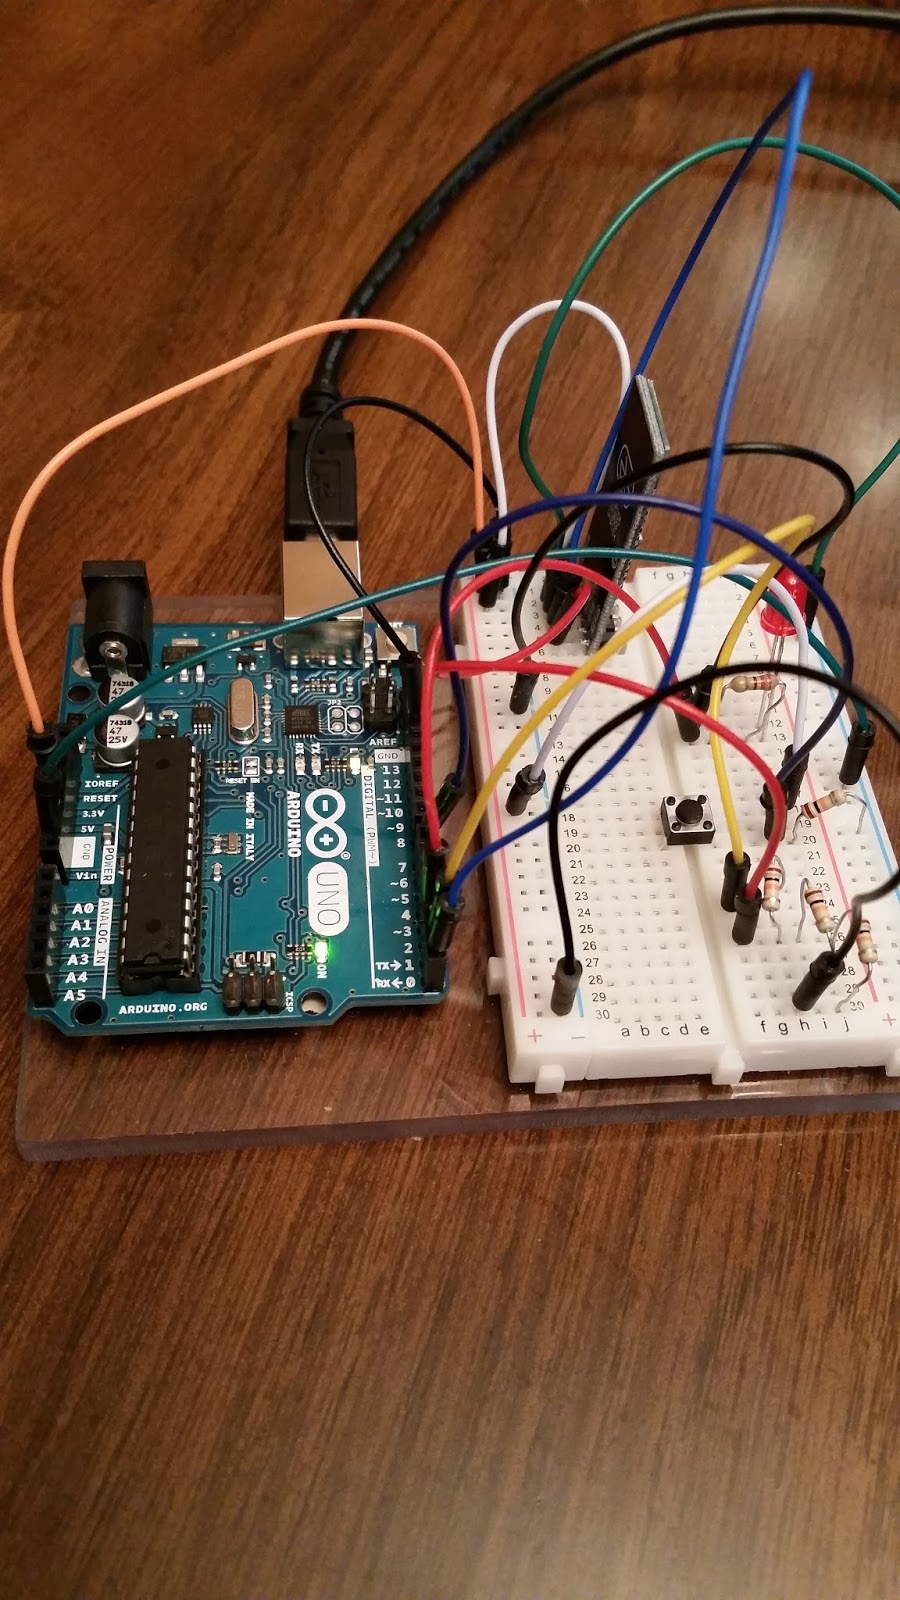 3 Way Switch Arduino Ai2 With Pt 2 Two Communication Hpms Robotics The Sketch Requires Only A Few Additions Too I Added Pair Of Variables To Track When State Changes And One For Digital Read Pin